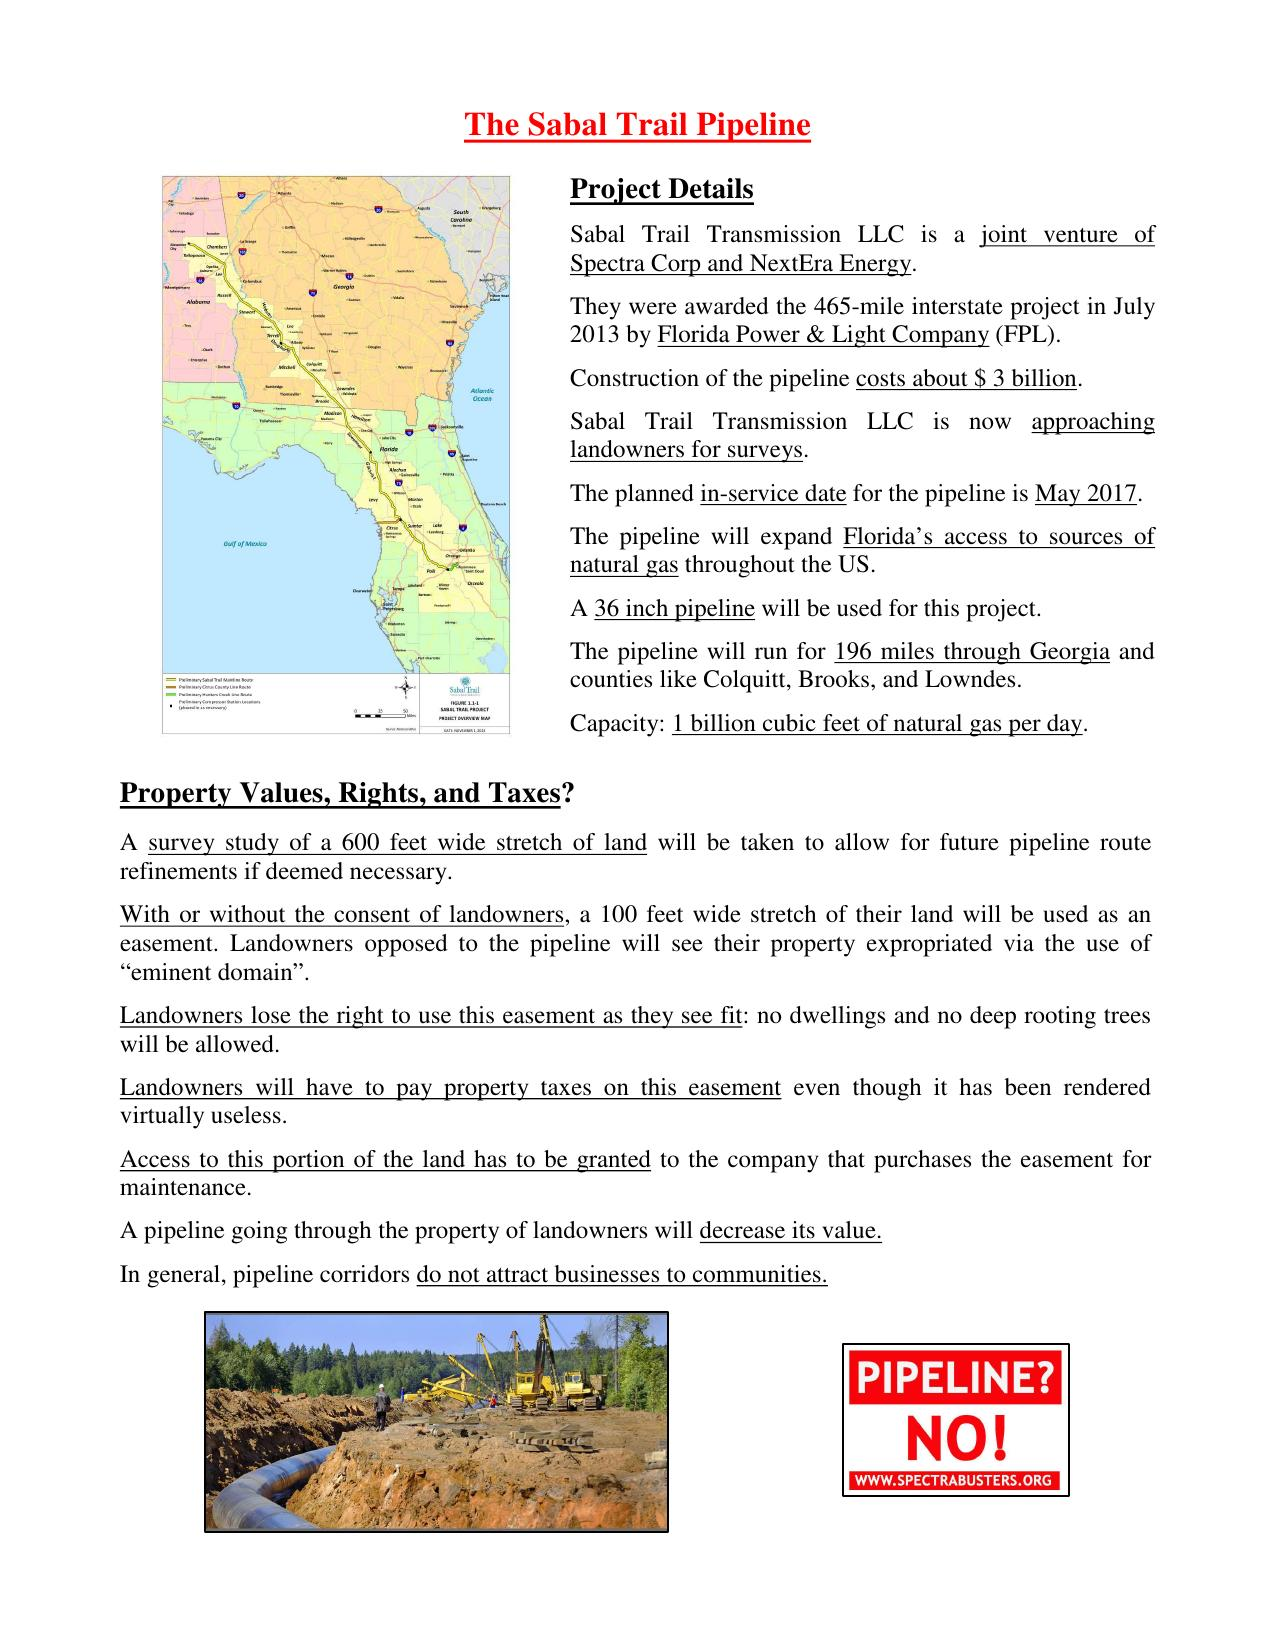 1275x1650 Project Details and Property Values, in Flyer: The Sabal Trail Pipeline, by Michael G. Noll, for SpectraBusters.org, 2 March 2014